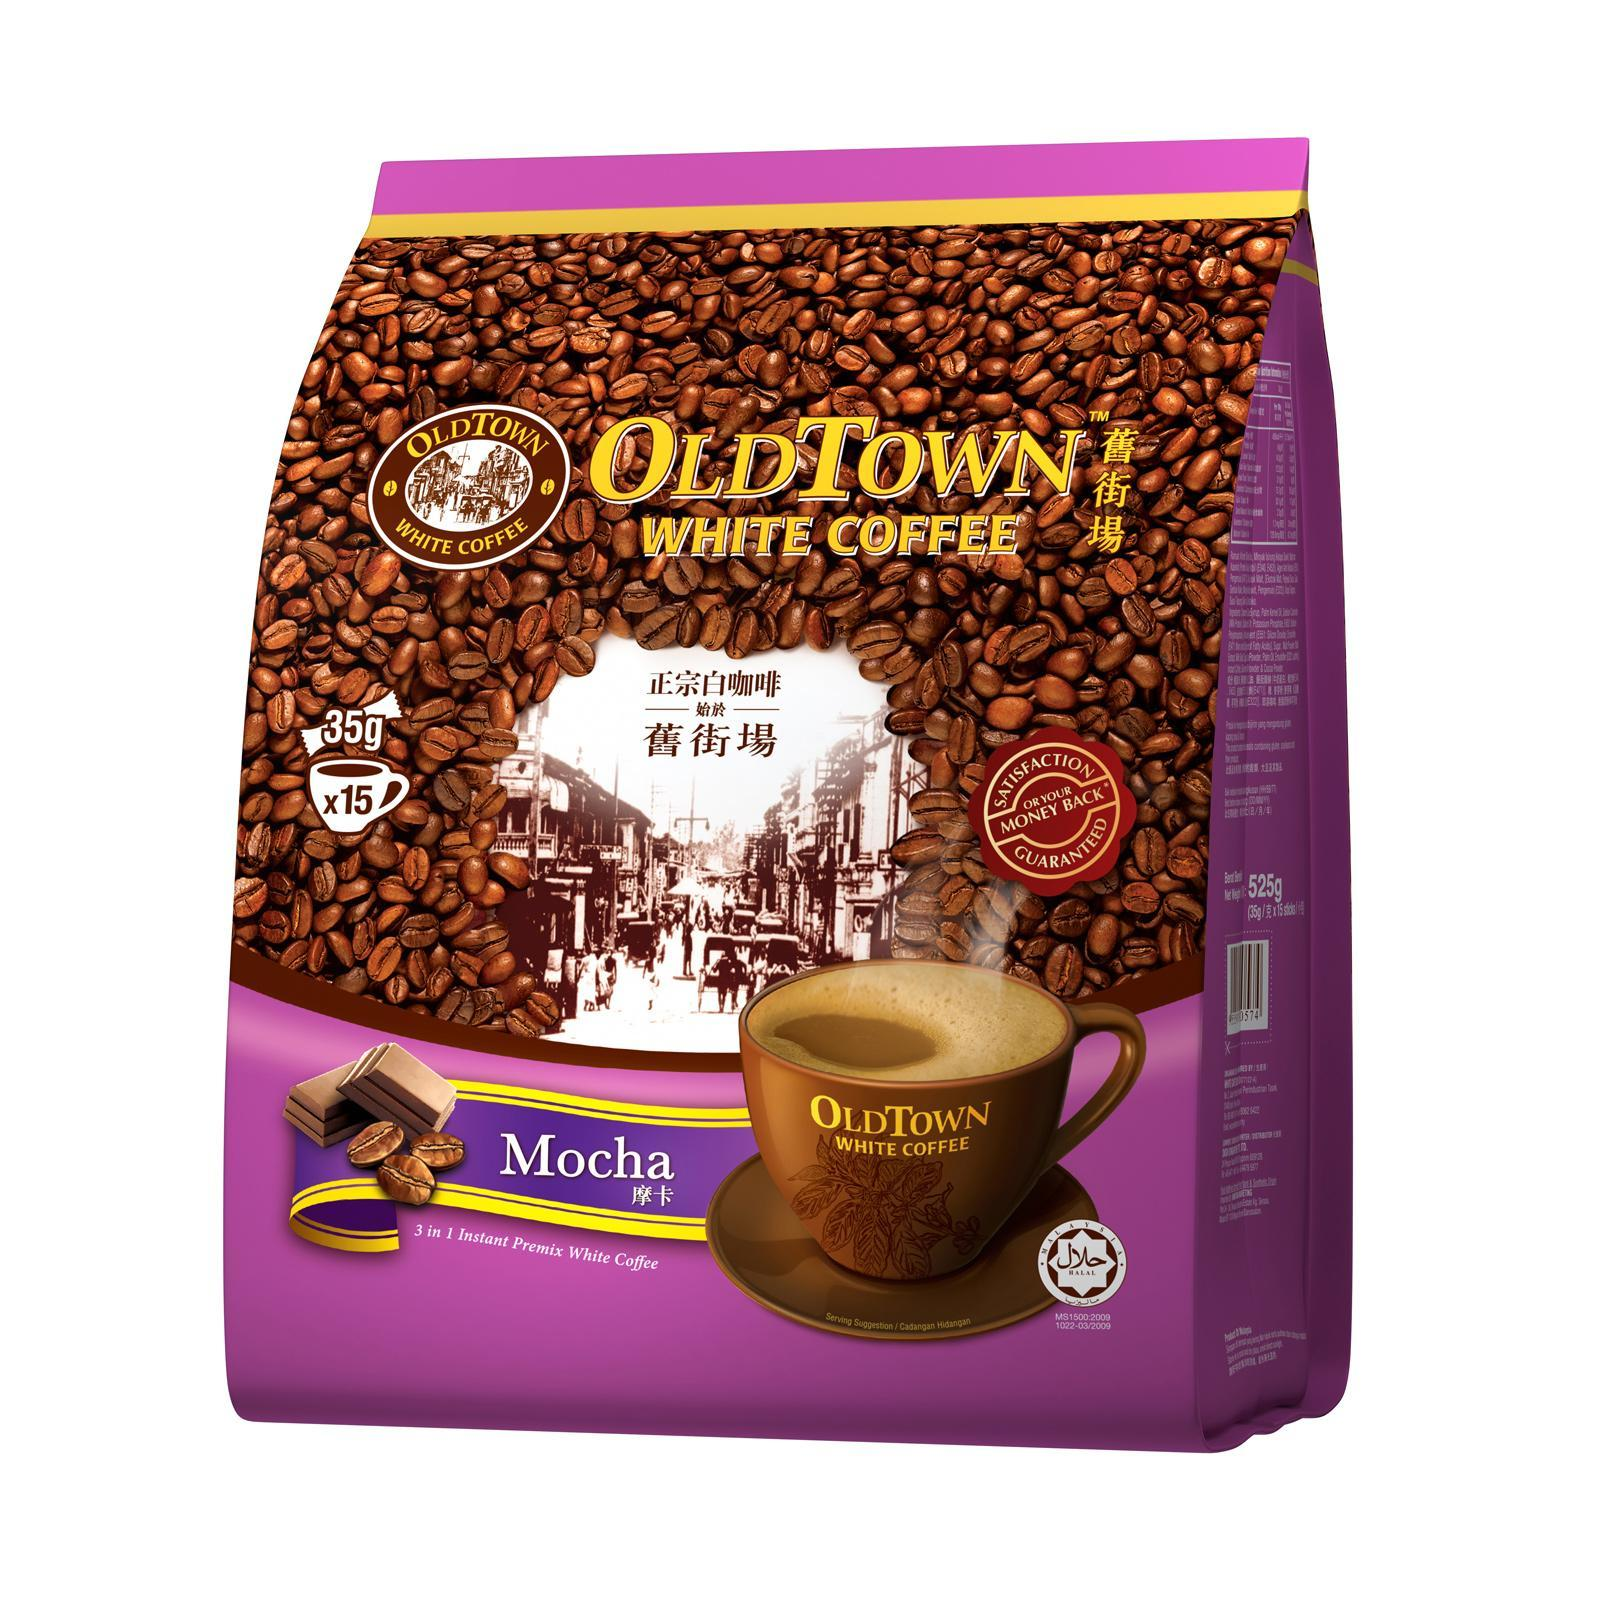 OLD TOWN White Coffee 3 in 1 Mocha 15sX35g